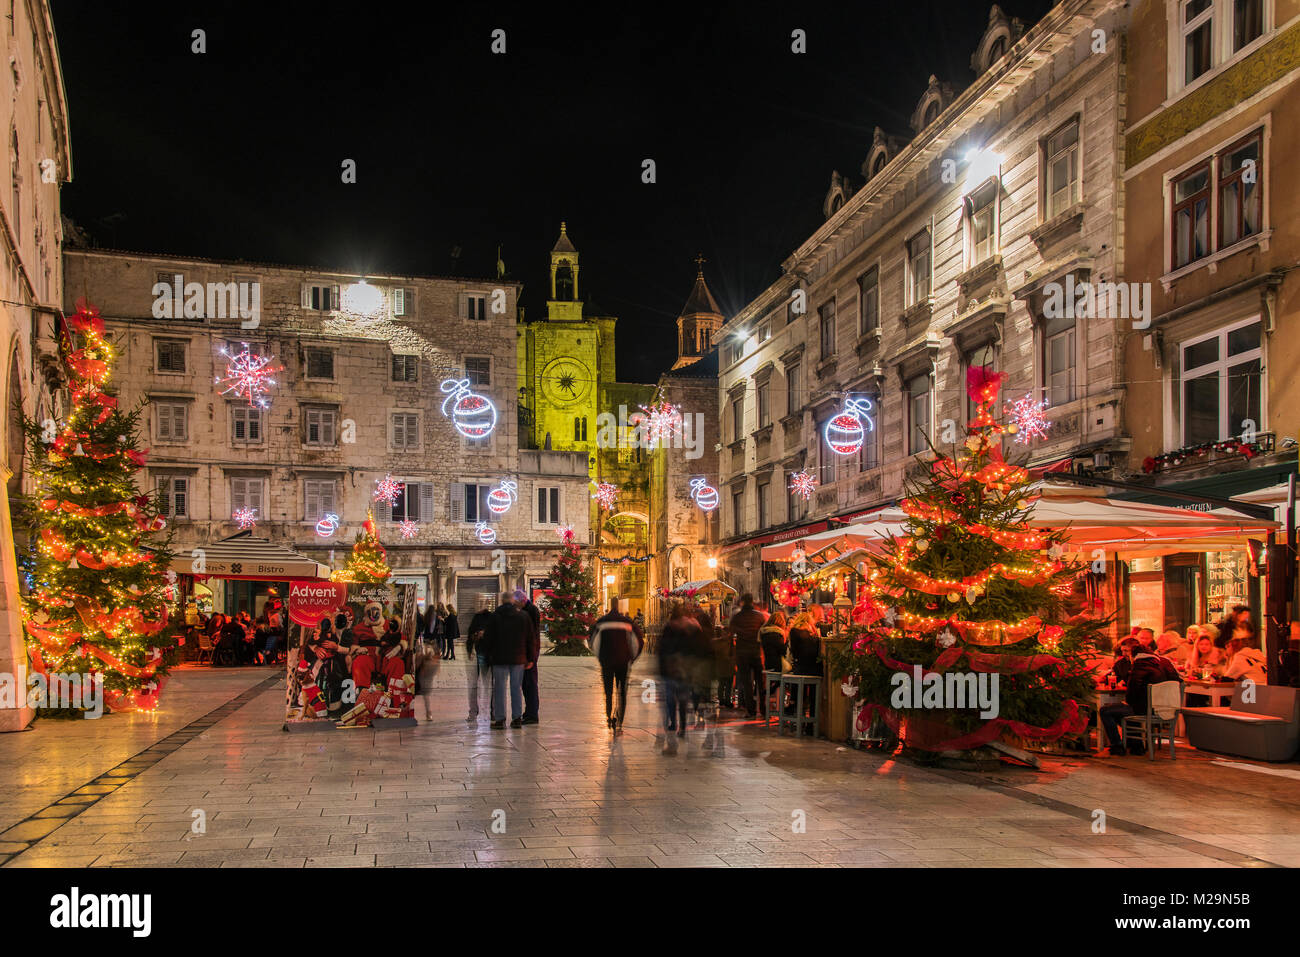 Christmas lights and decorations in Trg Narodni square, Split, Dalmatia, Croatia - Stock Image